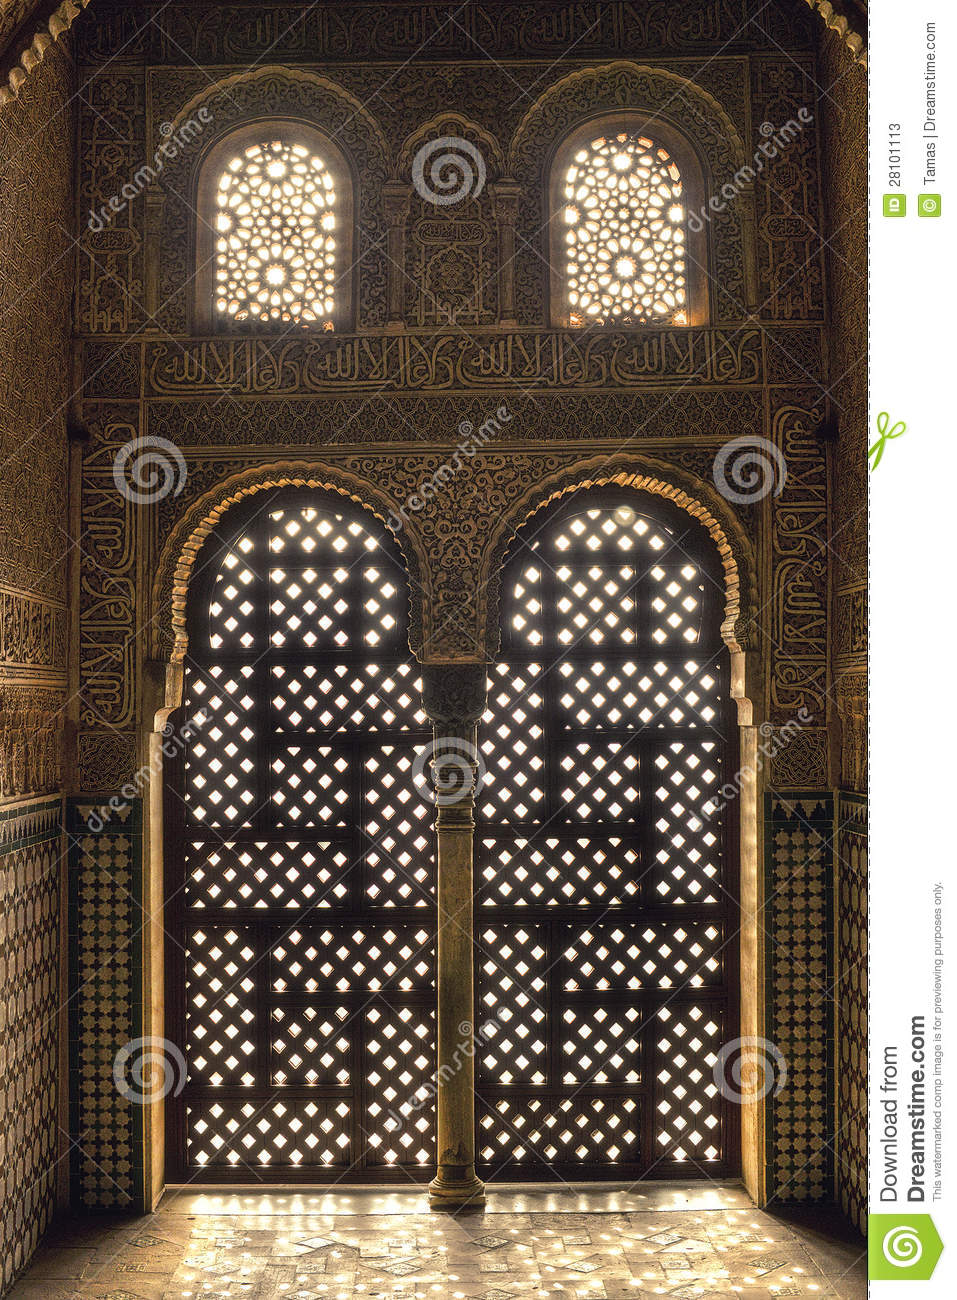 Sunrise At The Harem Alhambra Spain Stock Image Image Of